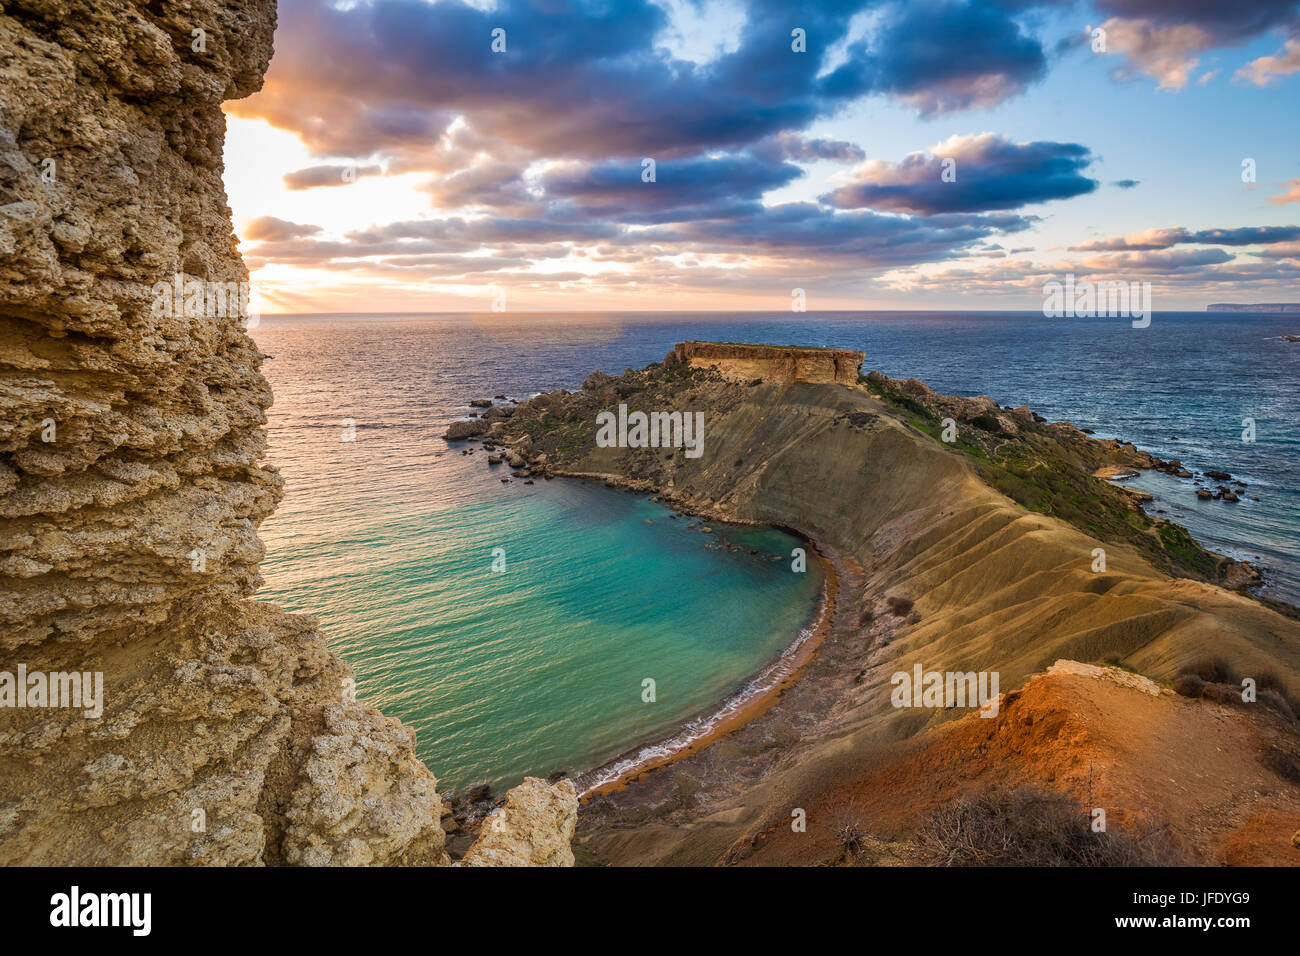 Mgarr, Malta - Panorama of Gnejna bay, the most beautiful beach in Malta at sunset with beautiful colorful sky and - Stock Image